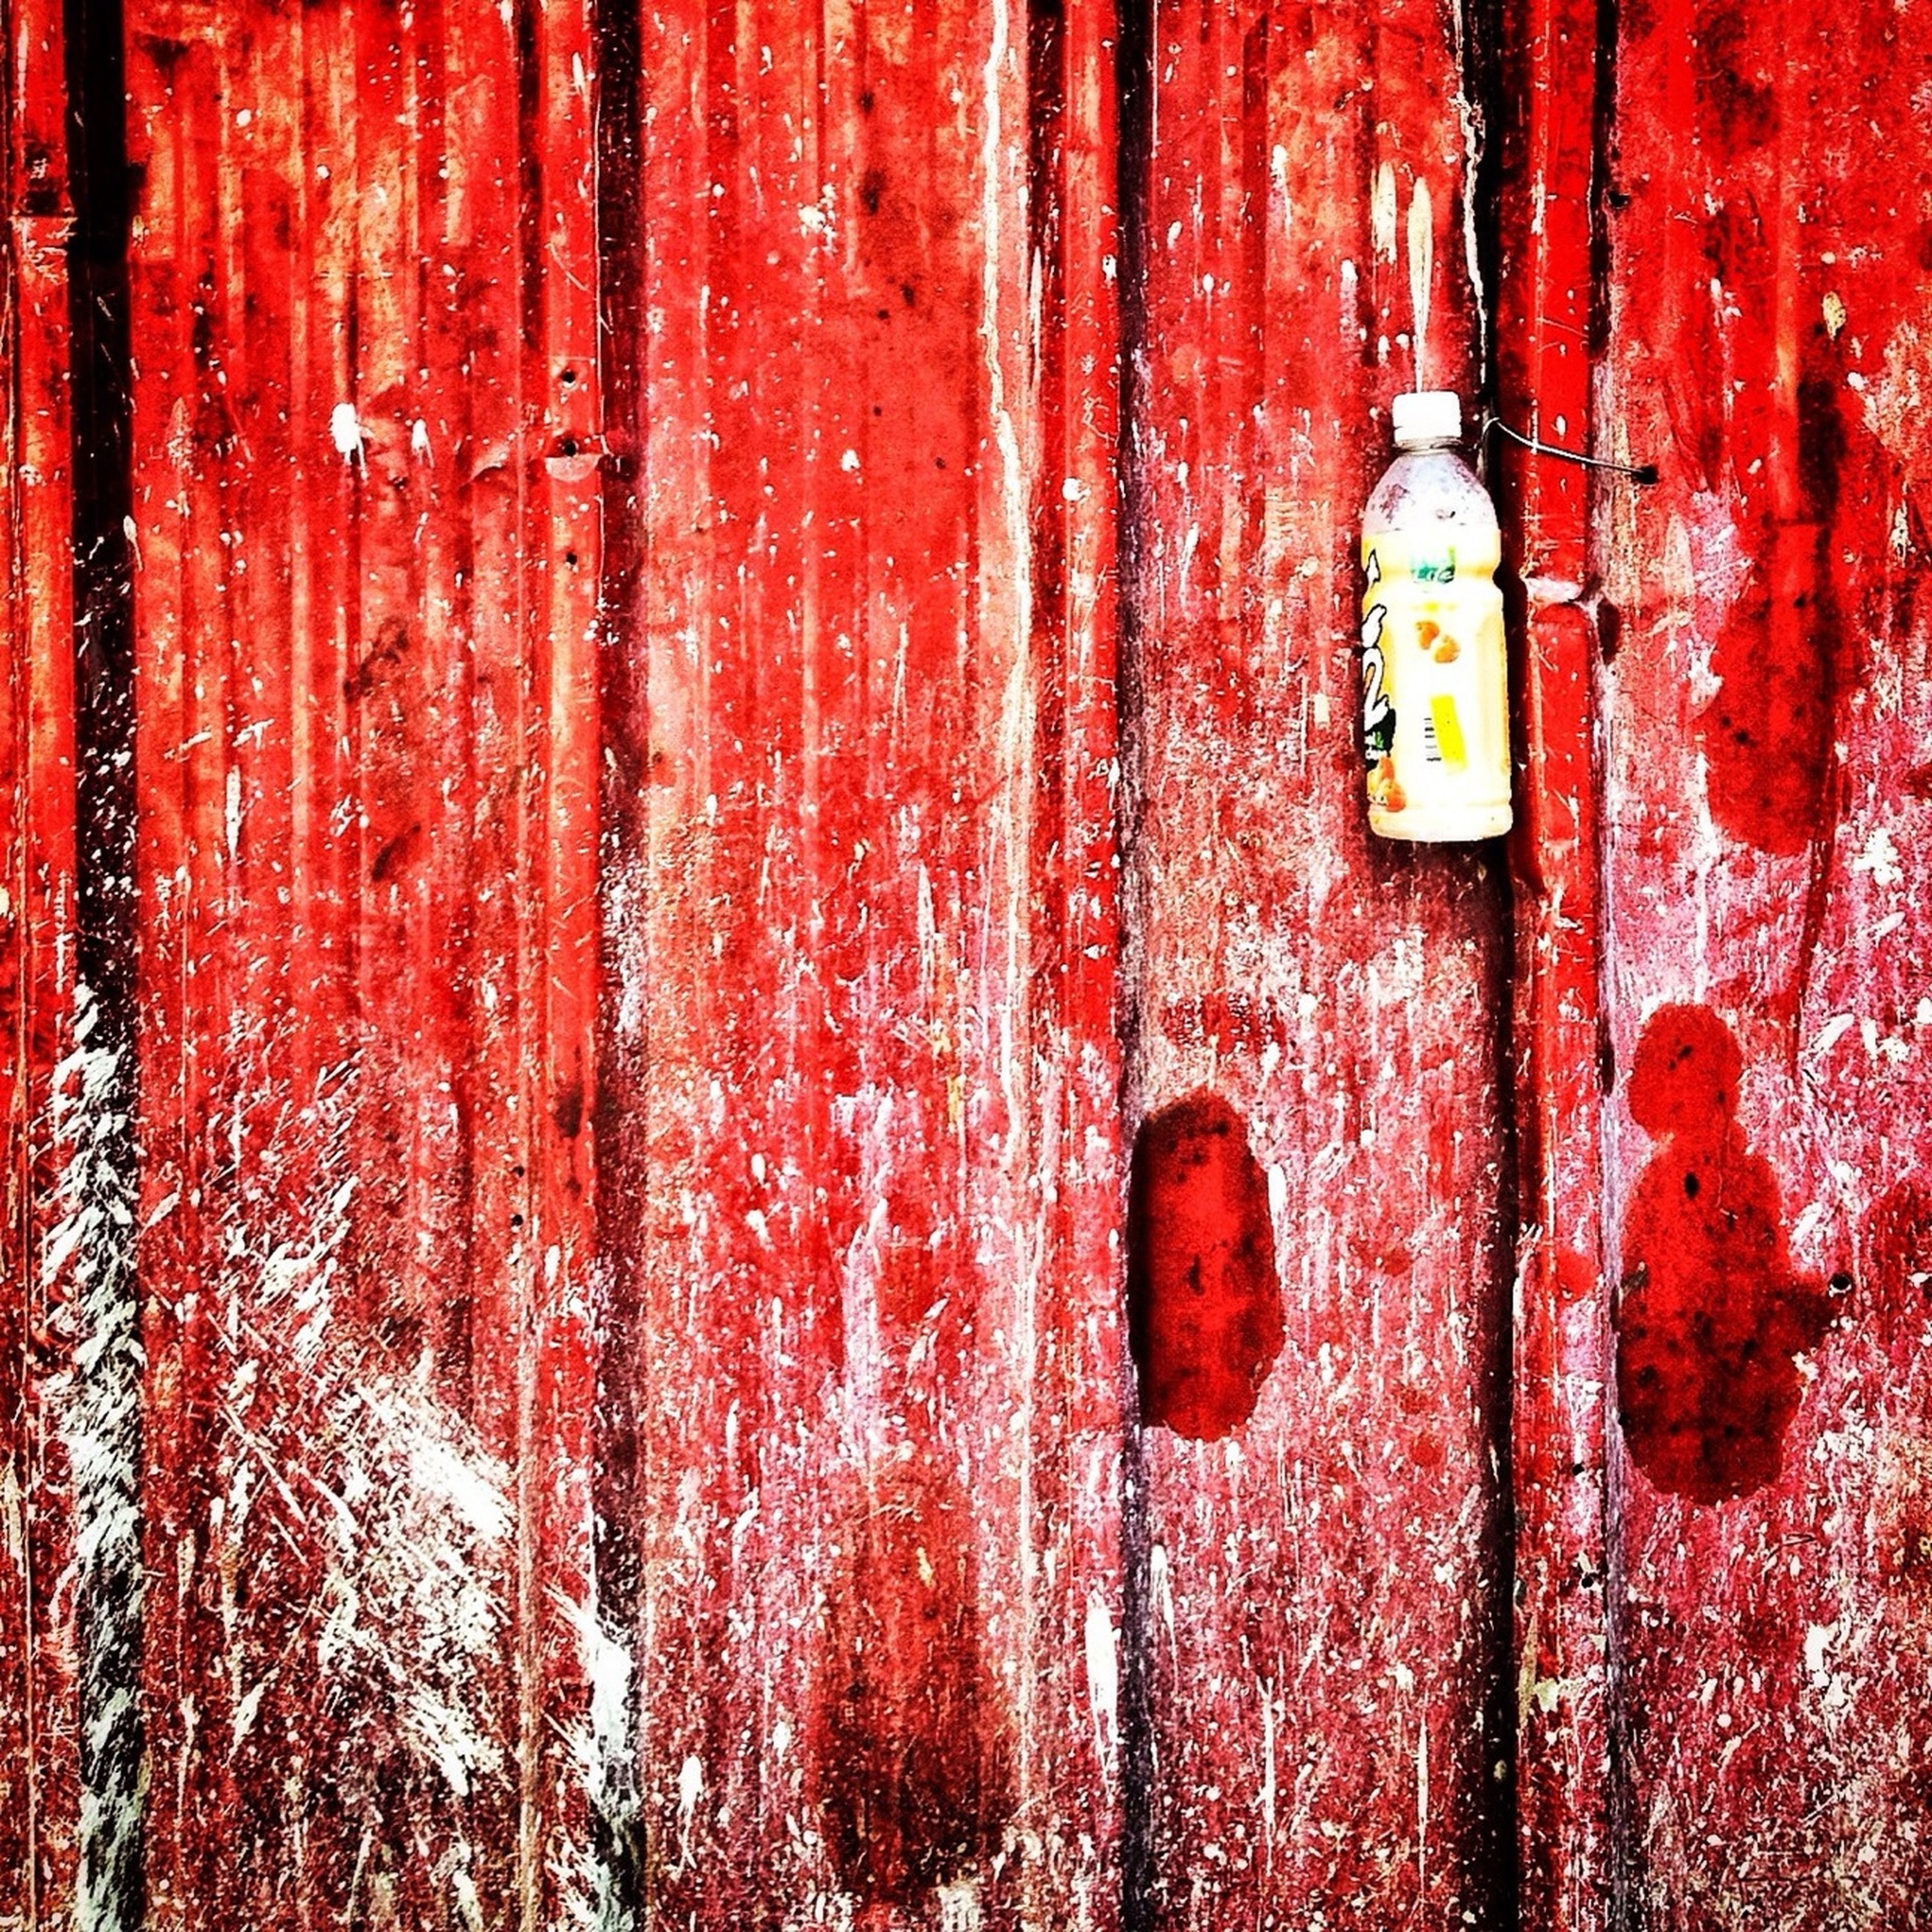 red, door, wood - material, full frame, built structure, weathered, close-up, old, protection, wall - building feature, backgrounds, textured, architecture, rusty, safety, metal, wooden, security, building exterior, closed